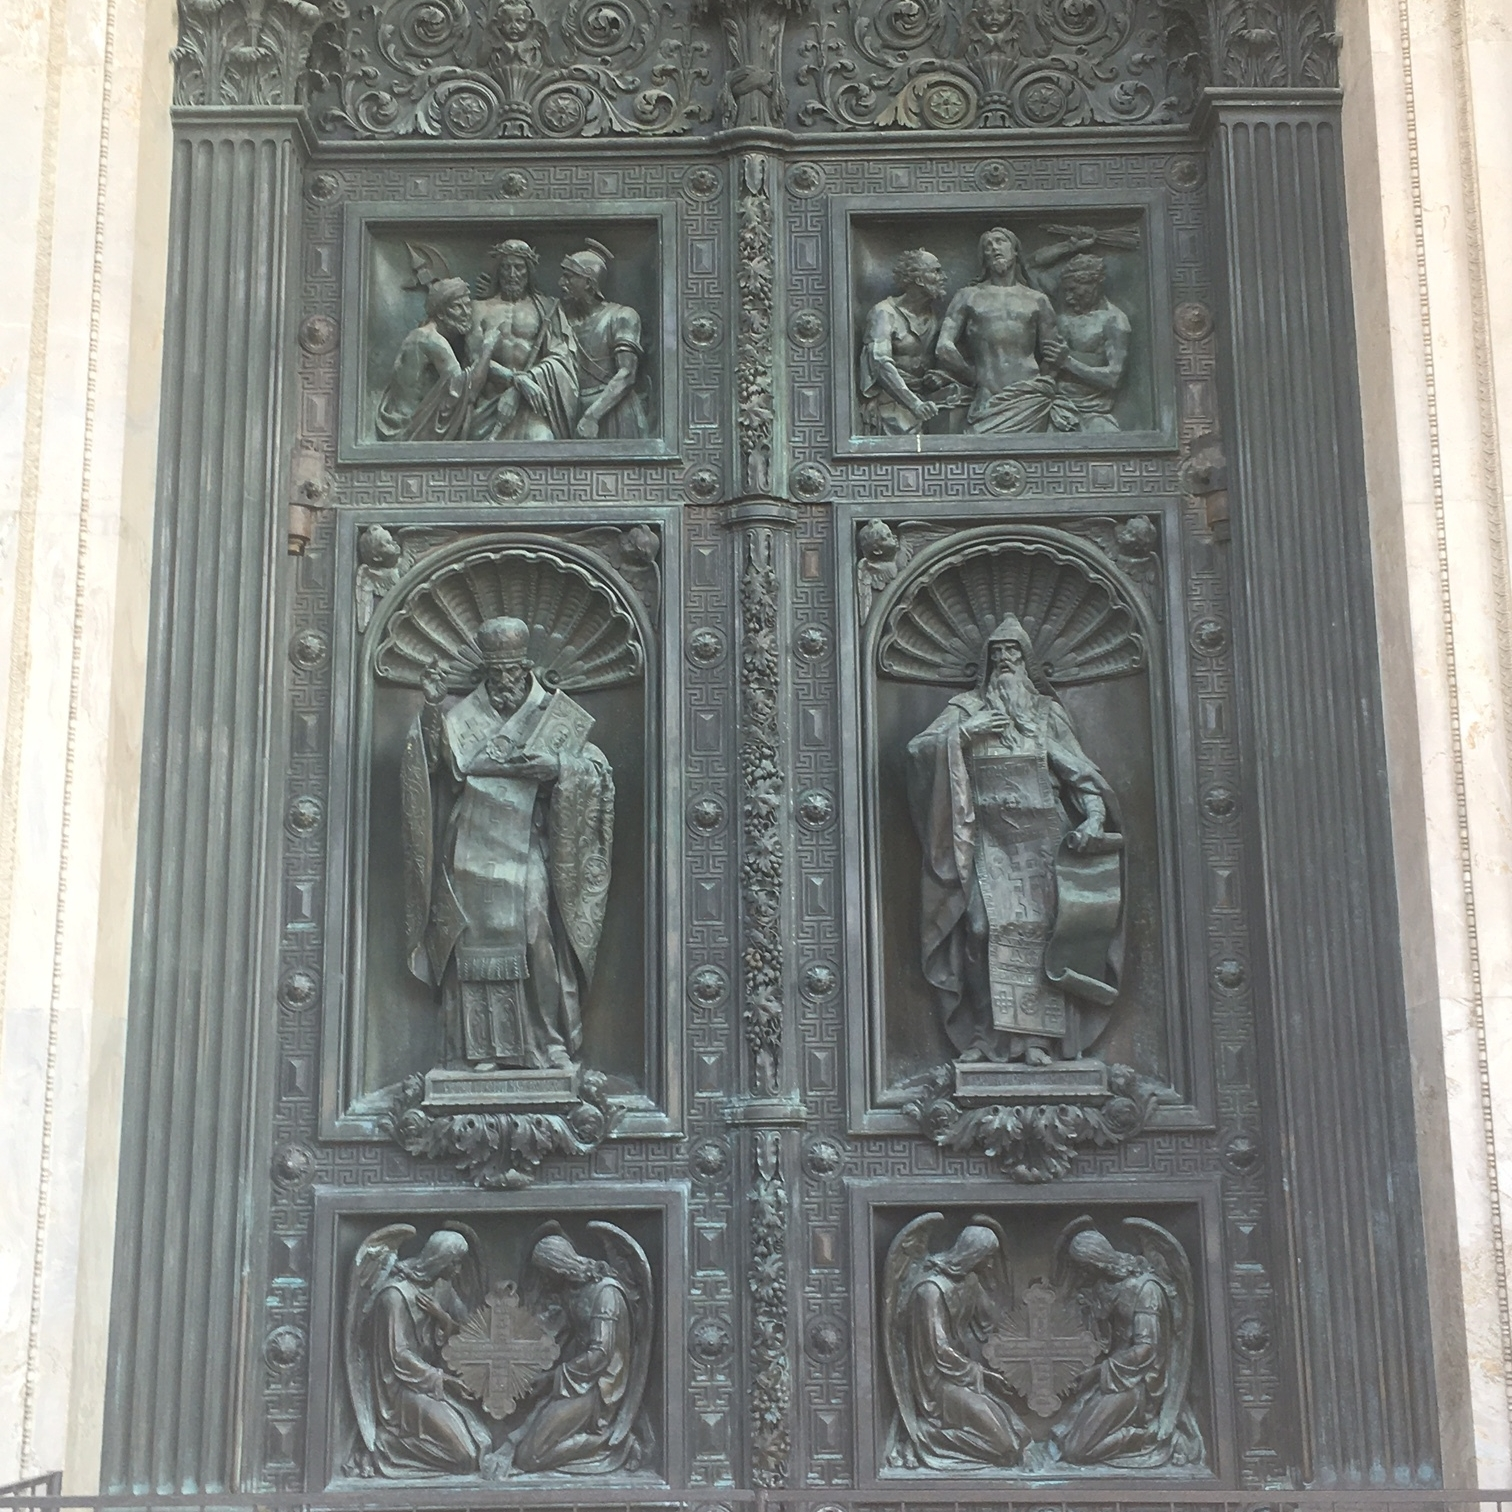 Doors of St Isaac's, St Petersburg by The Doubtful Traveller